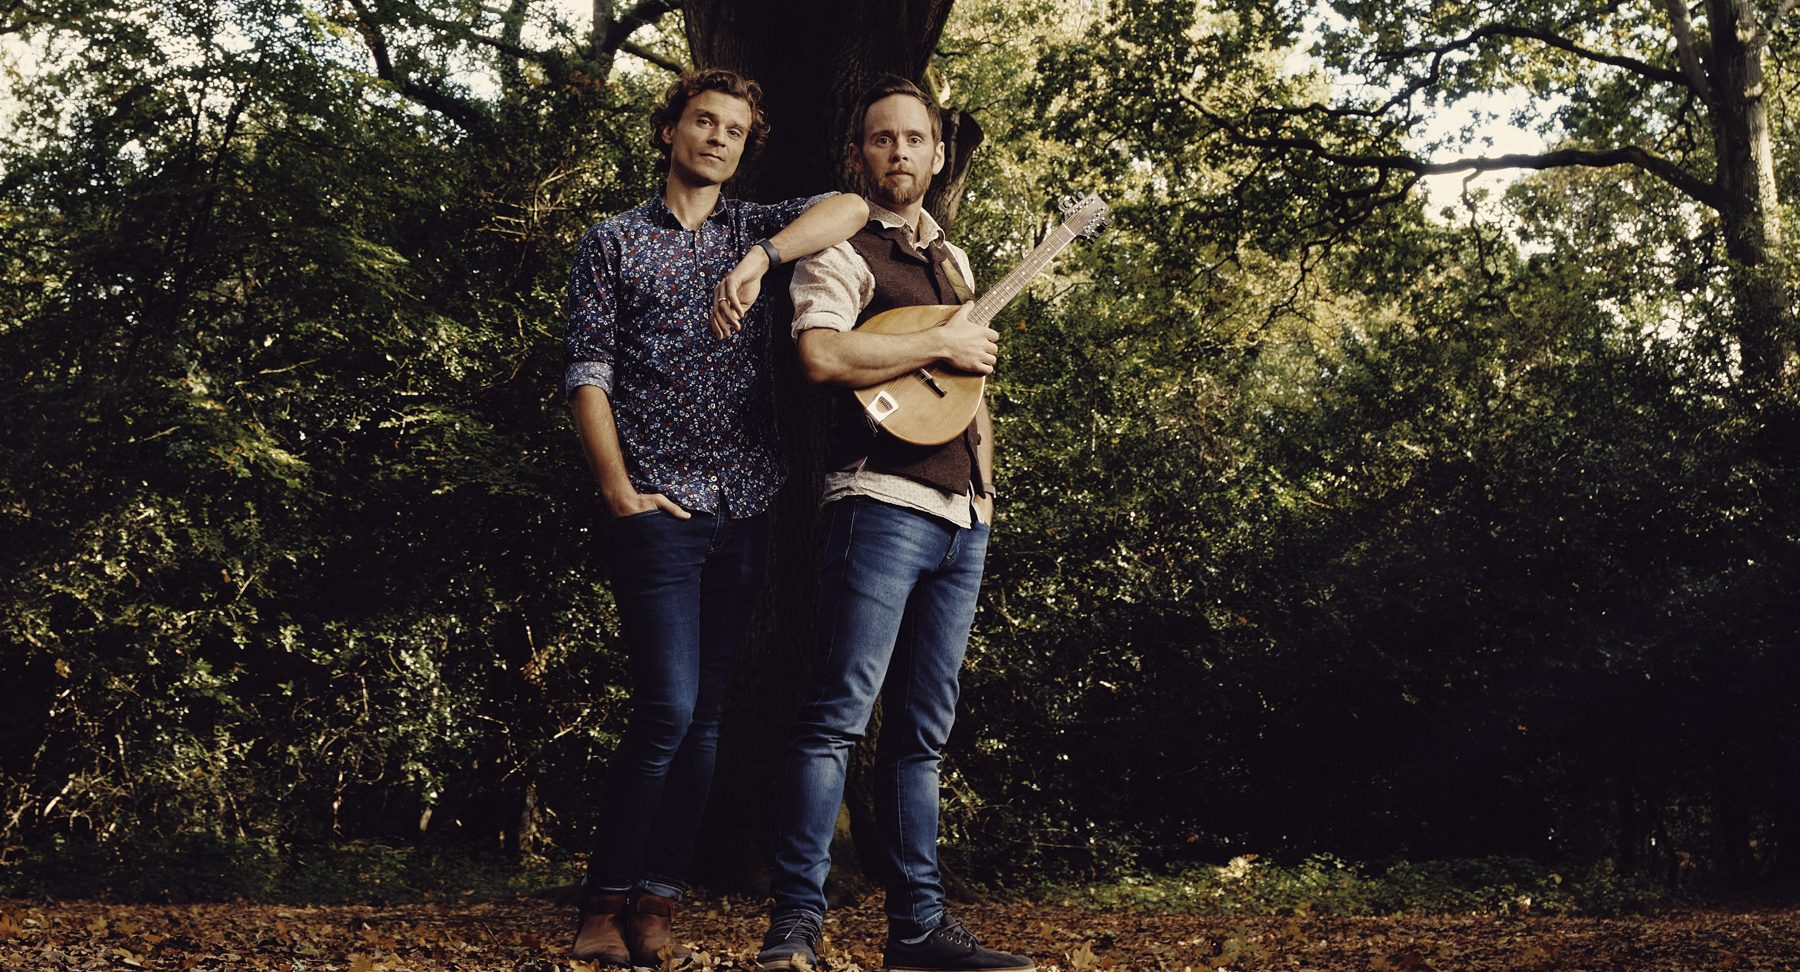 Dorset Duo Address their Carbon Footprint with 'Ninebarrow Woodland' as they Launch New Album